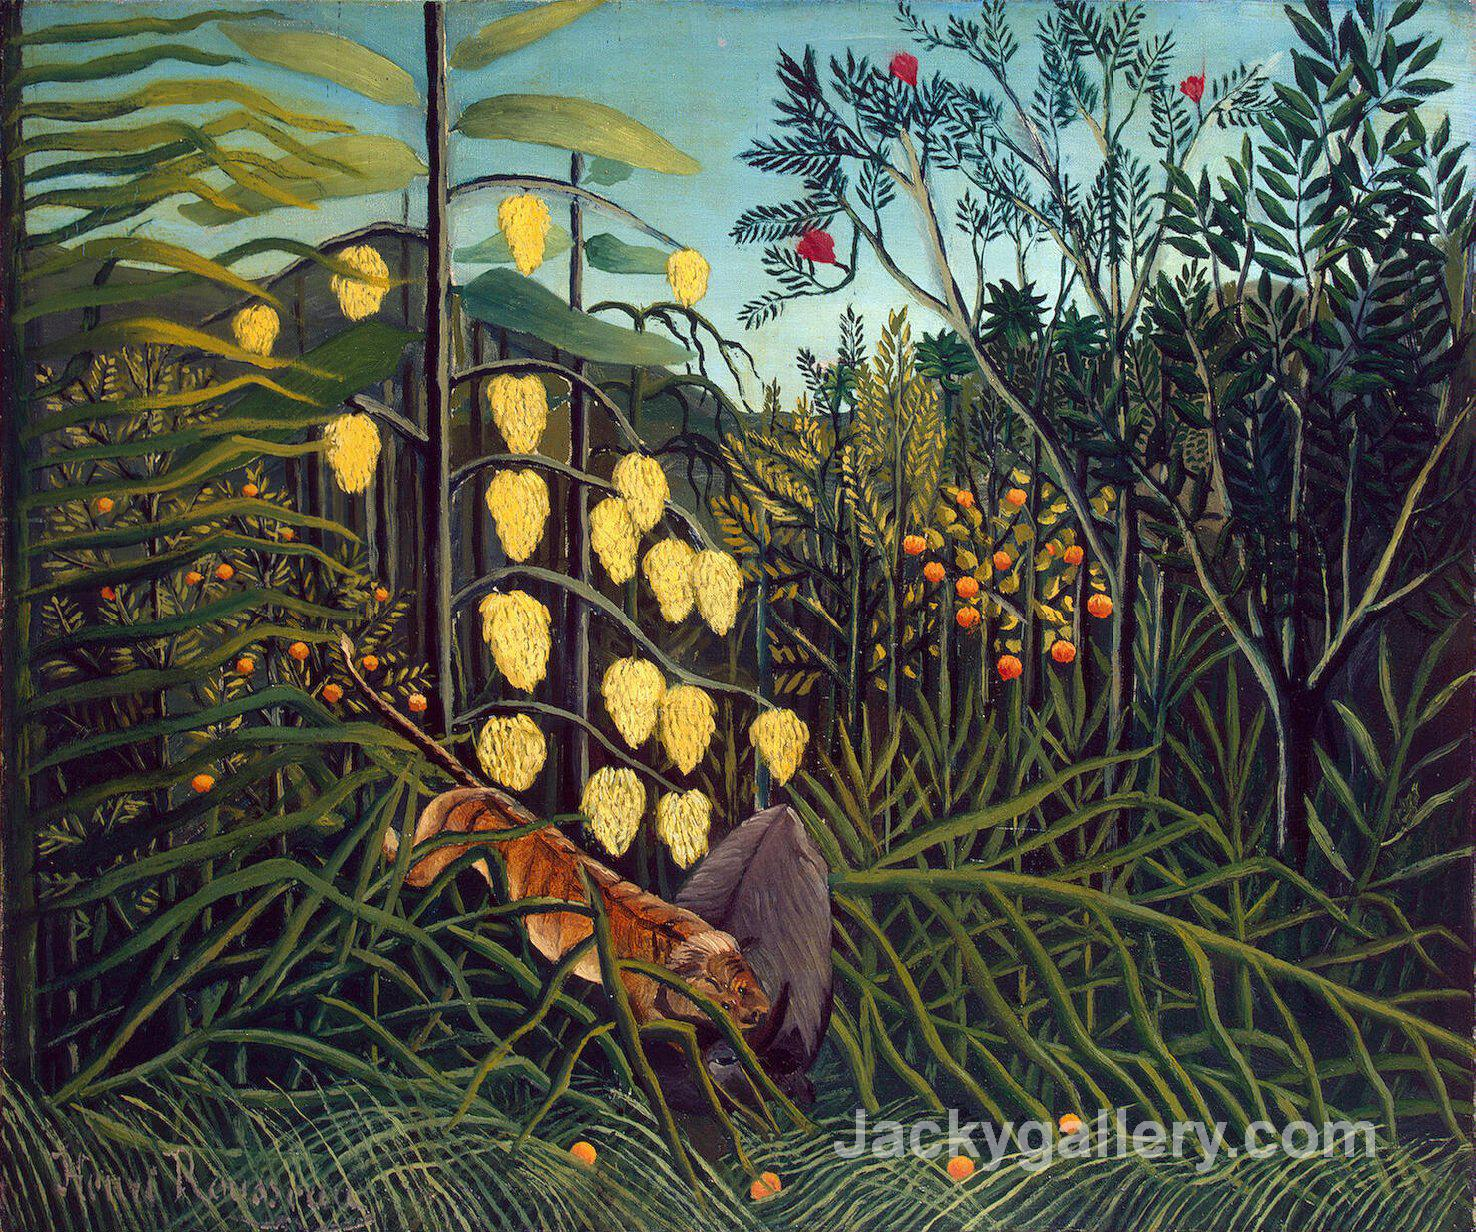 Tropical Forest Battling Tiger and Buffalo by Henri Rousseau paintings reproduction